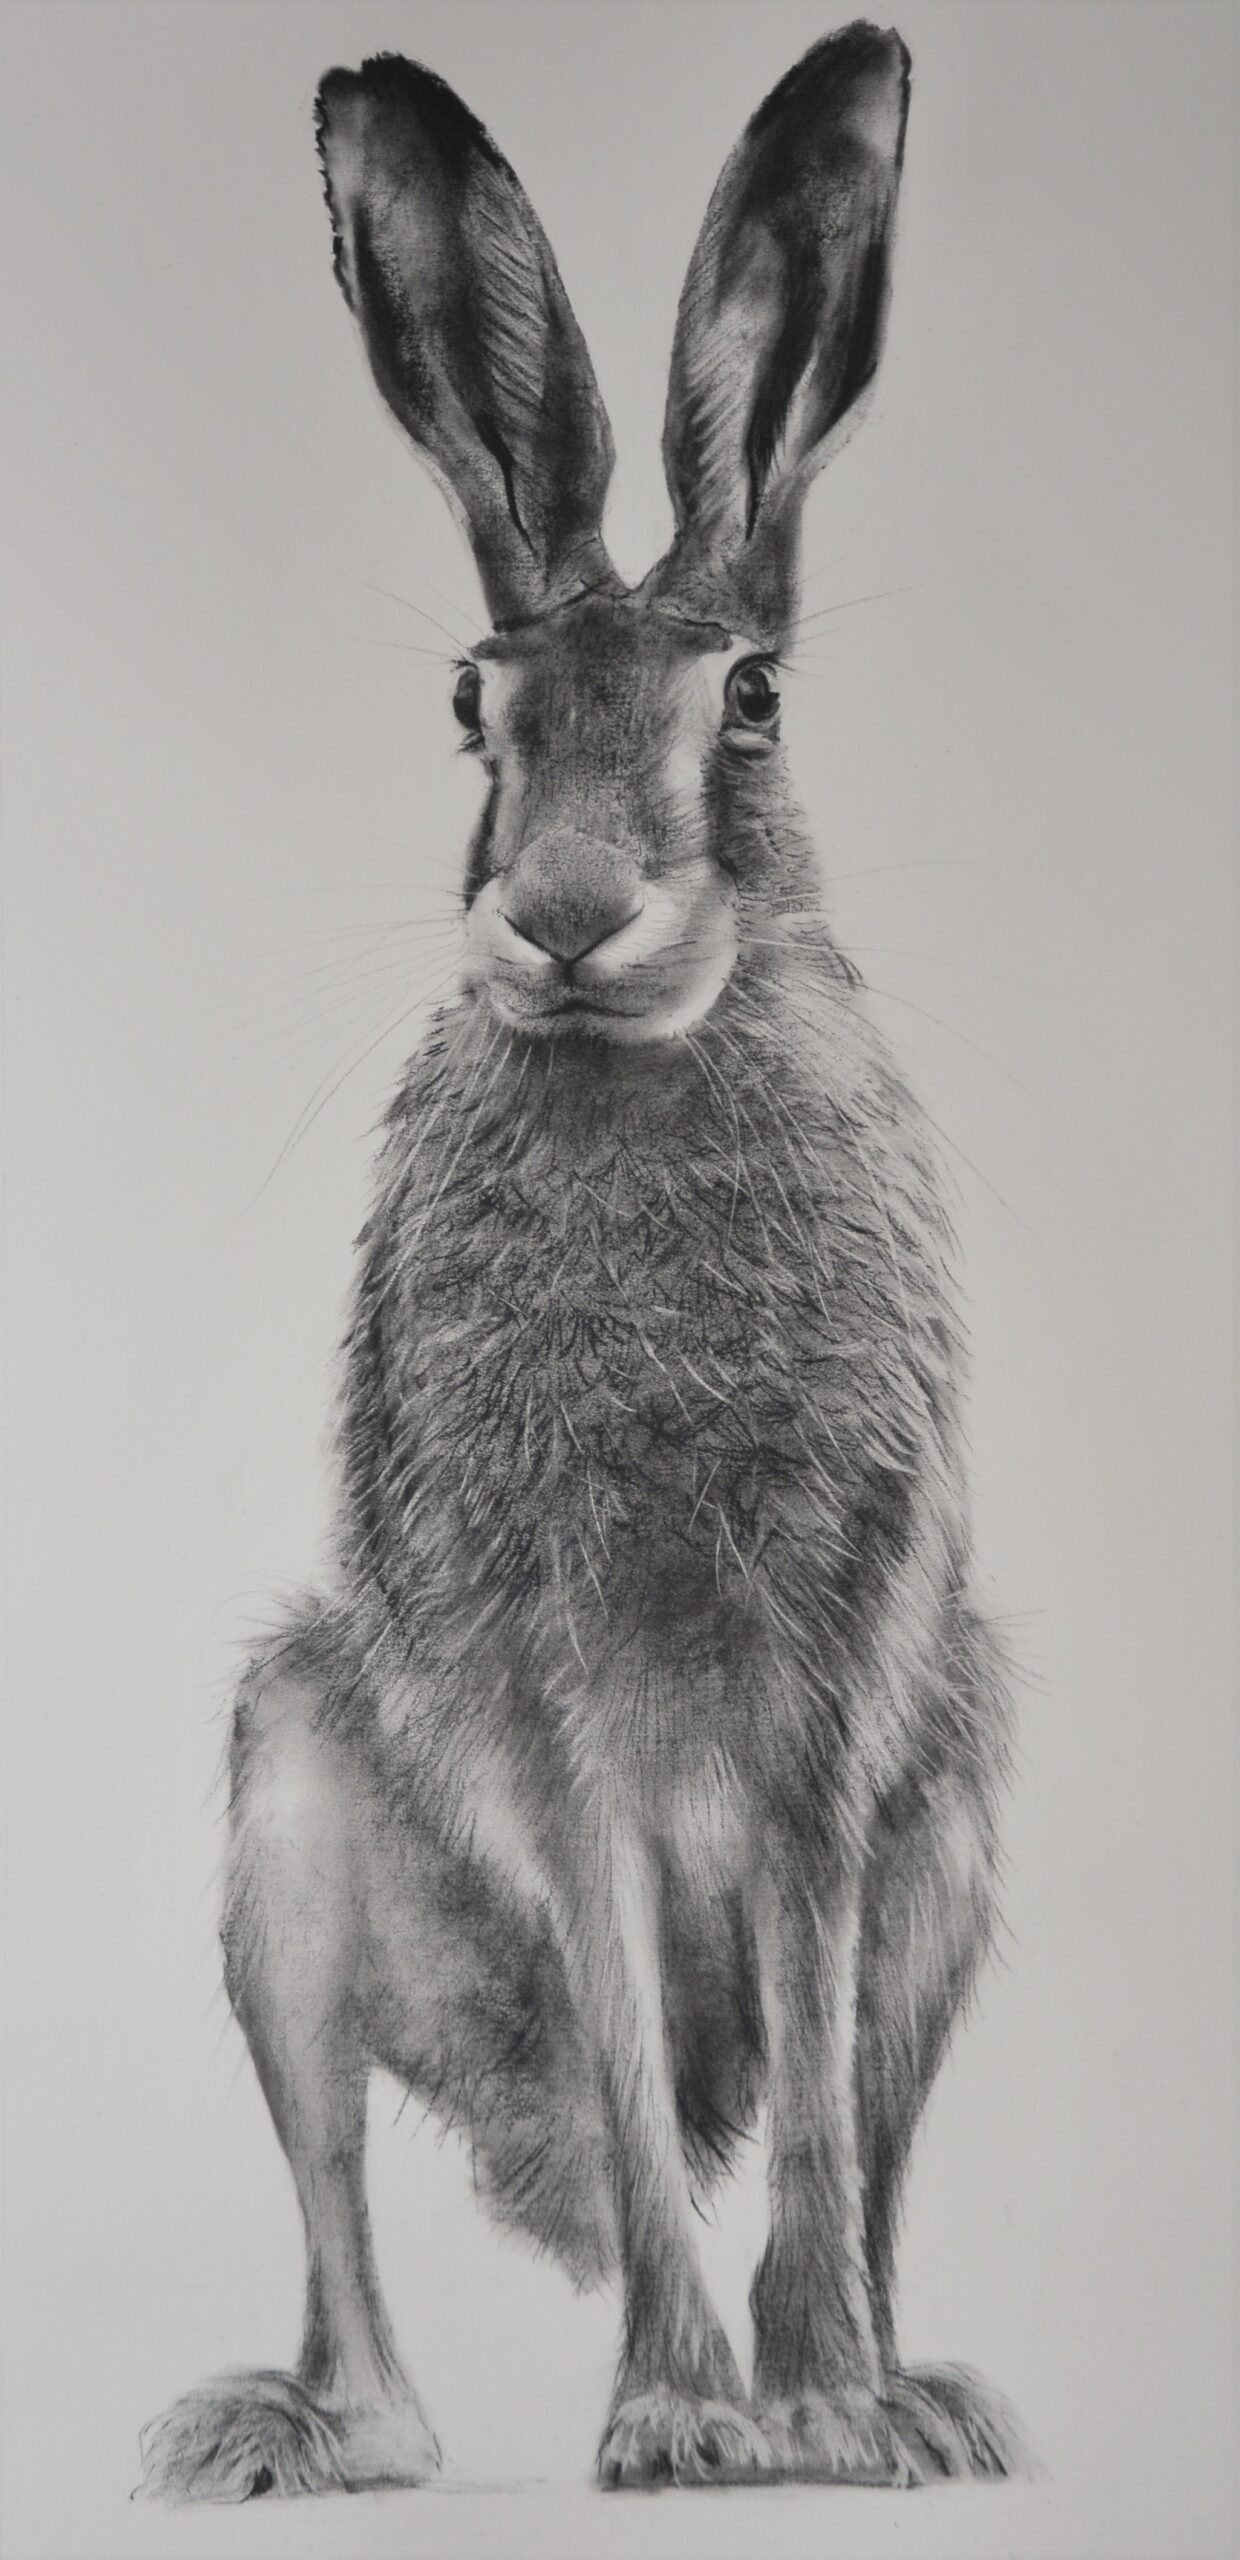 Charcoal drawing of a hare